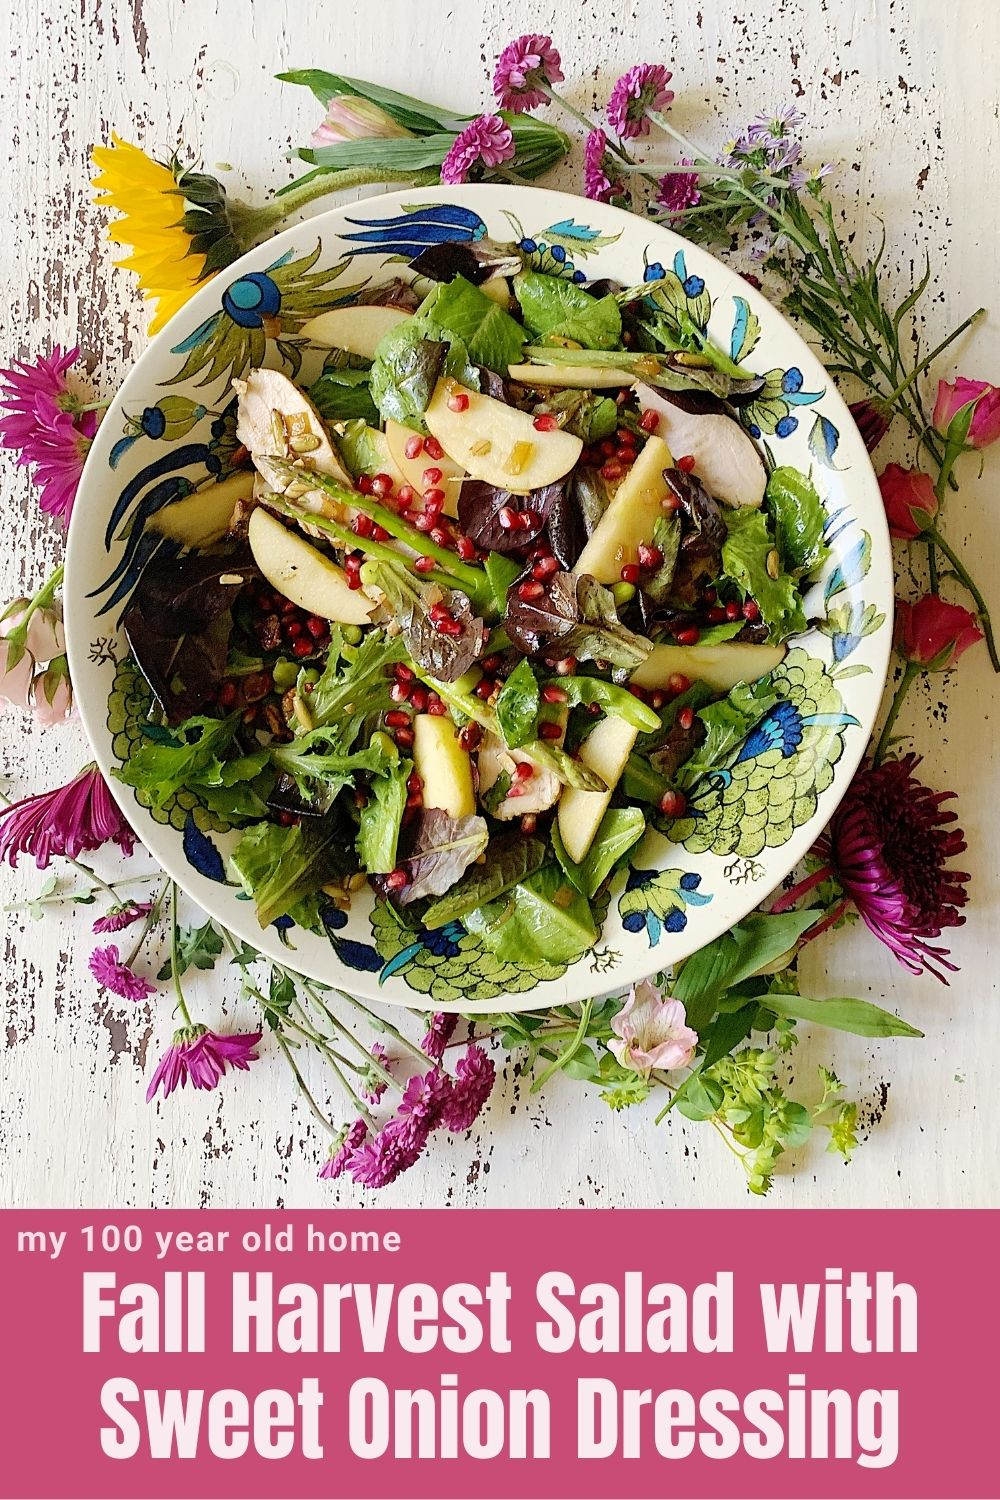 I am always creating fun salads and this Fall Harvest Salad with Sweet Onion Dressing just might be my favorite.